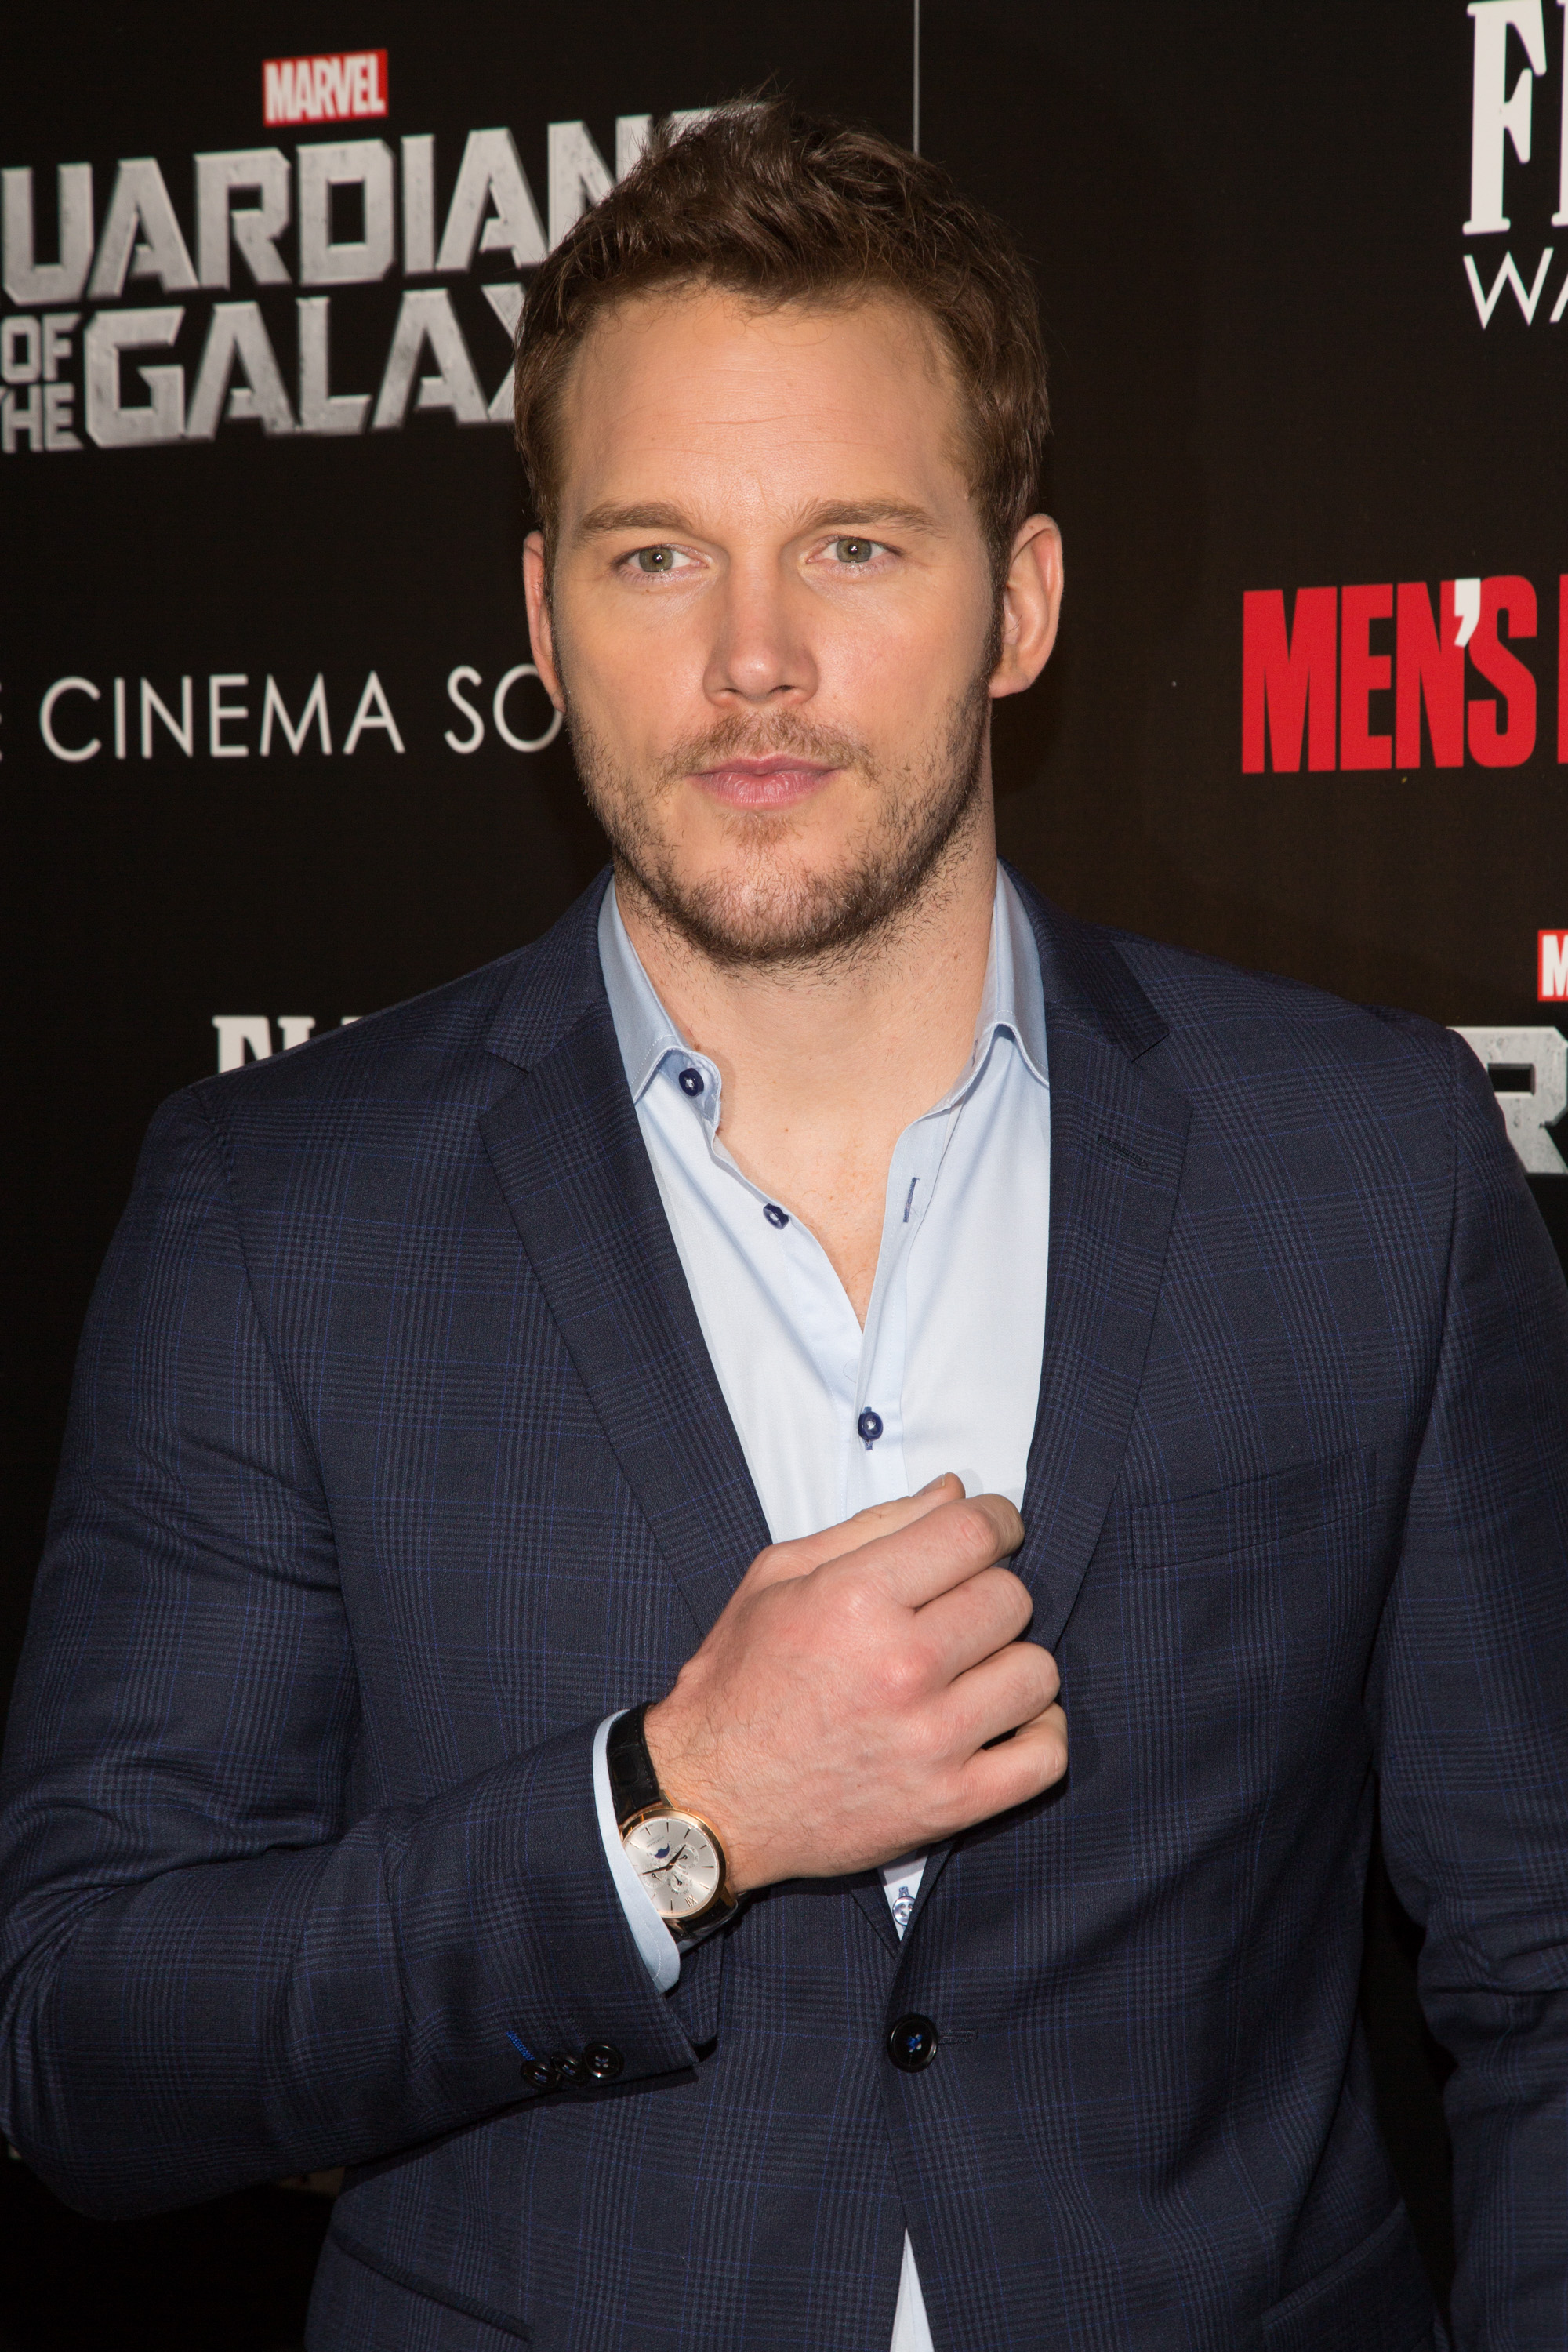 Actor Chris Pratt attends The Cinema Society with Men's Fitness and FIJI Water special screening of Marvel's  Guardians of the Galaxy  at Crosby Street Hotel in New York City on July 29, 2014